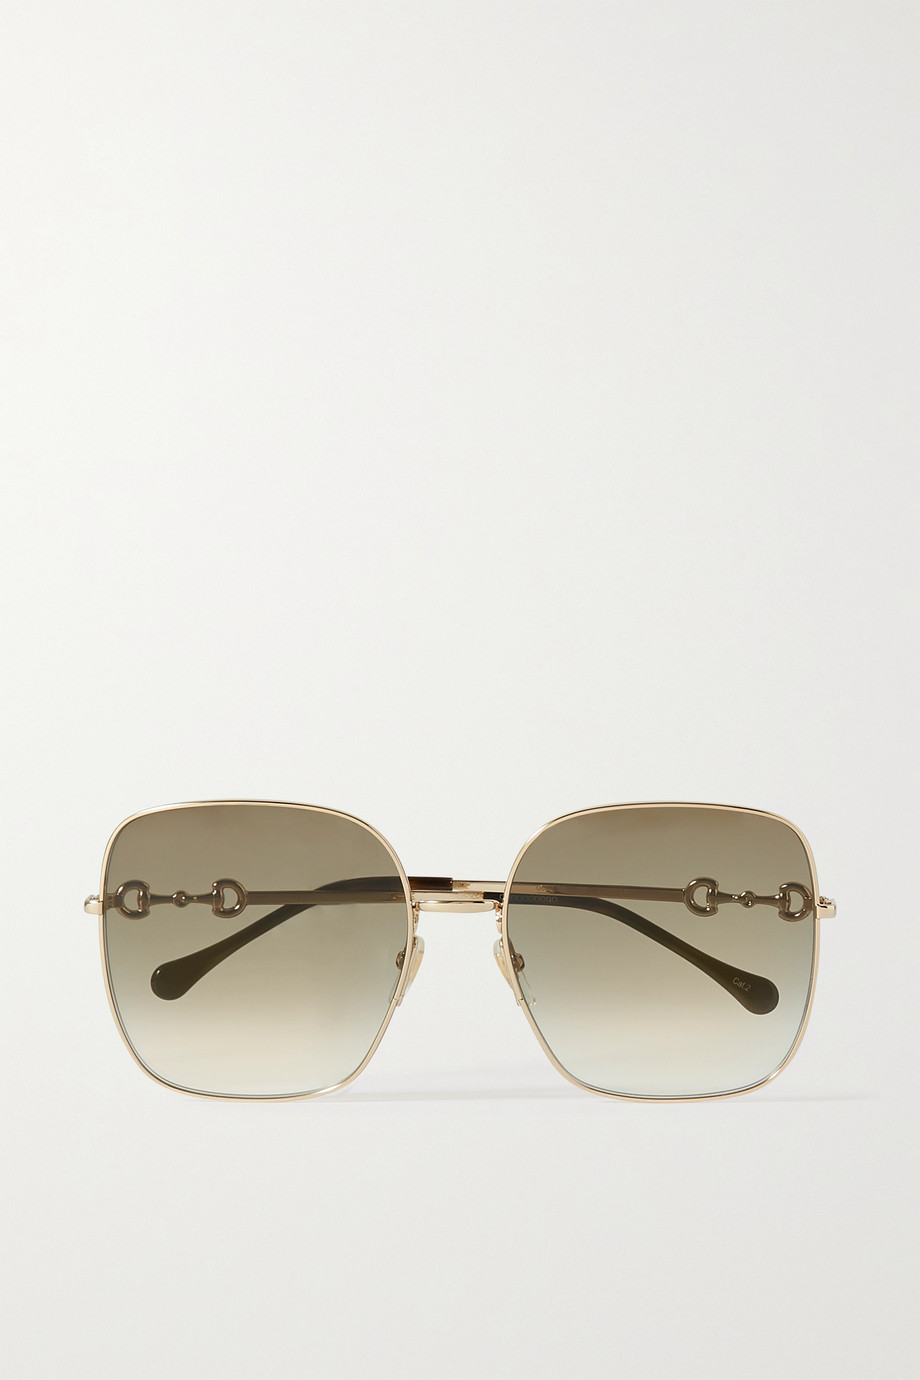 GUCCI Horsebit-detailed square-frame gold-tone sunglasses